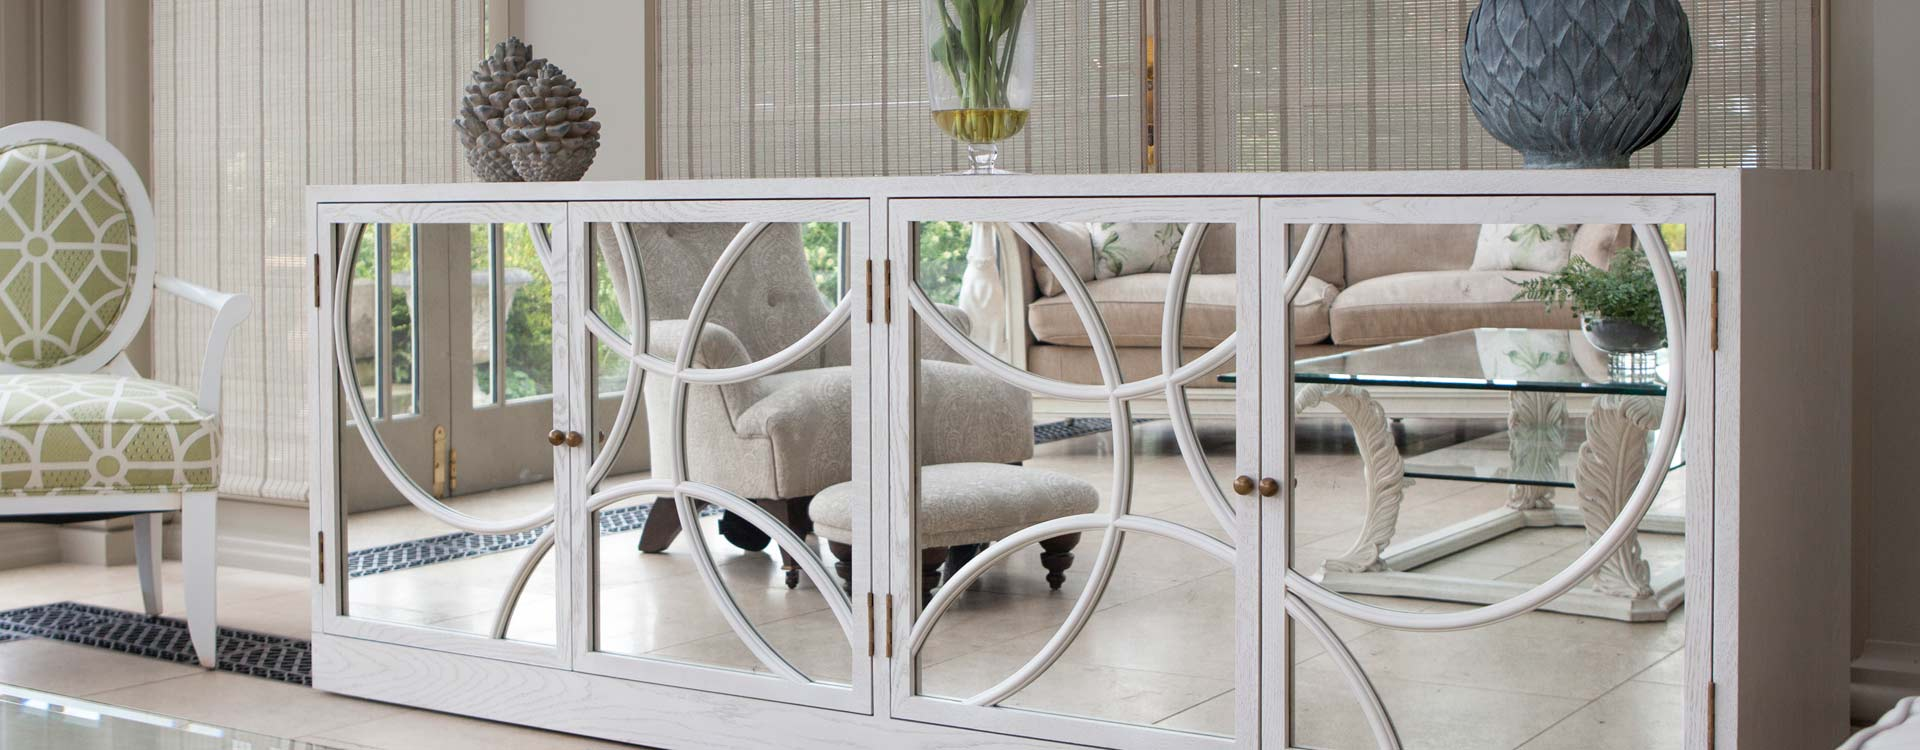 Conservatory Furniture in a showroom